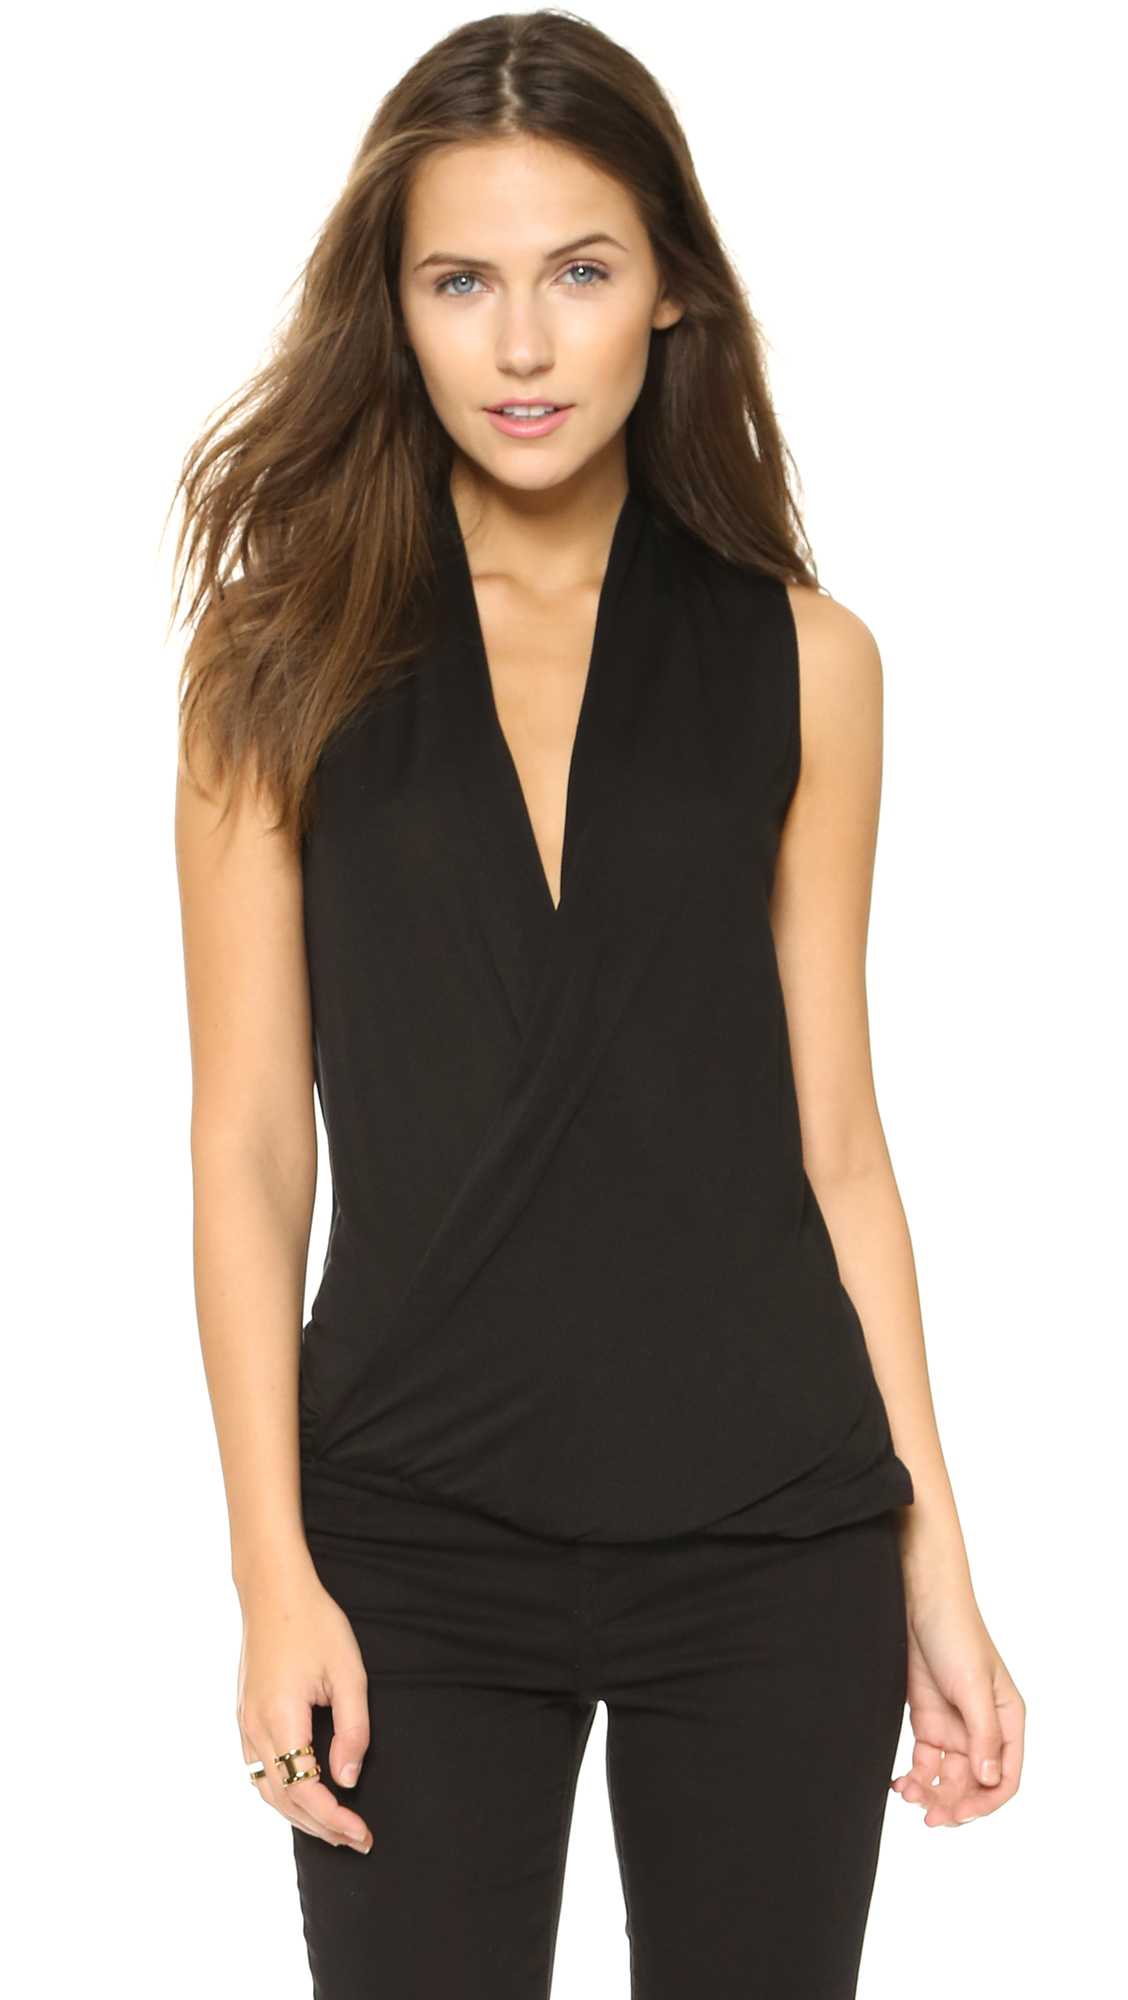 Lanston Surplice Pullover Top - Black at Shopbop